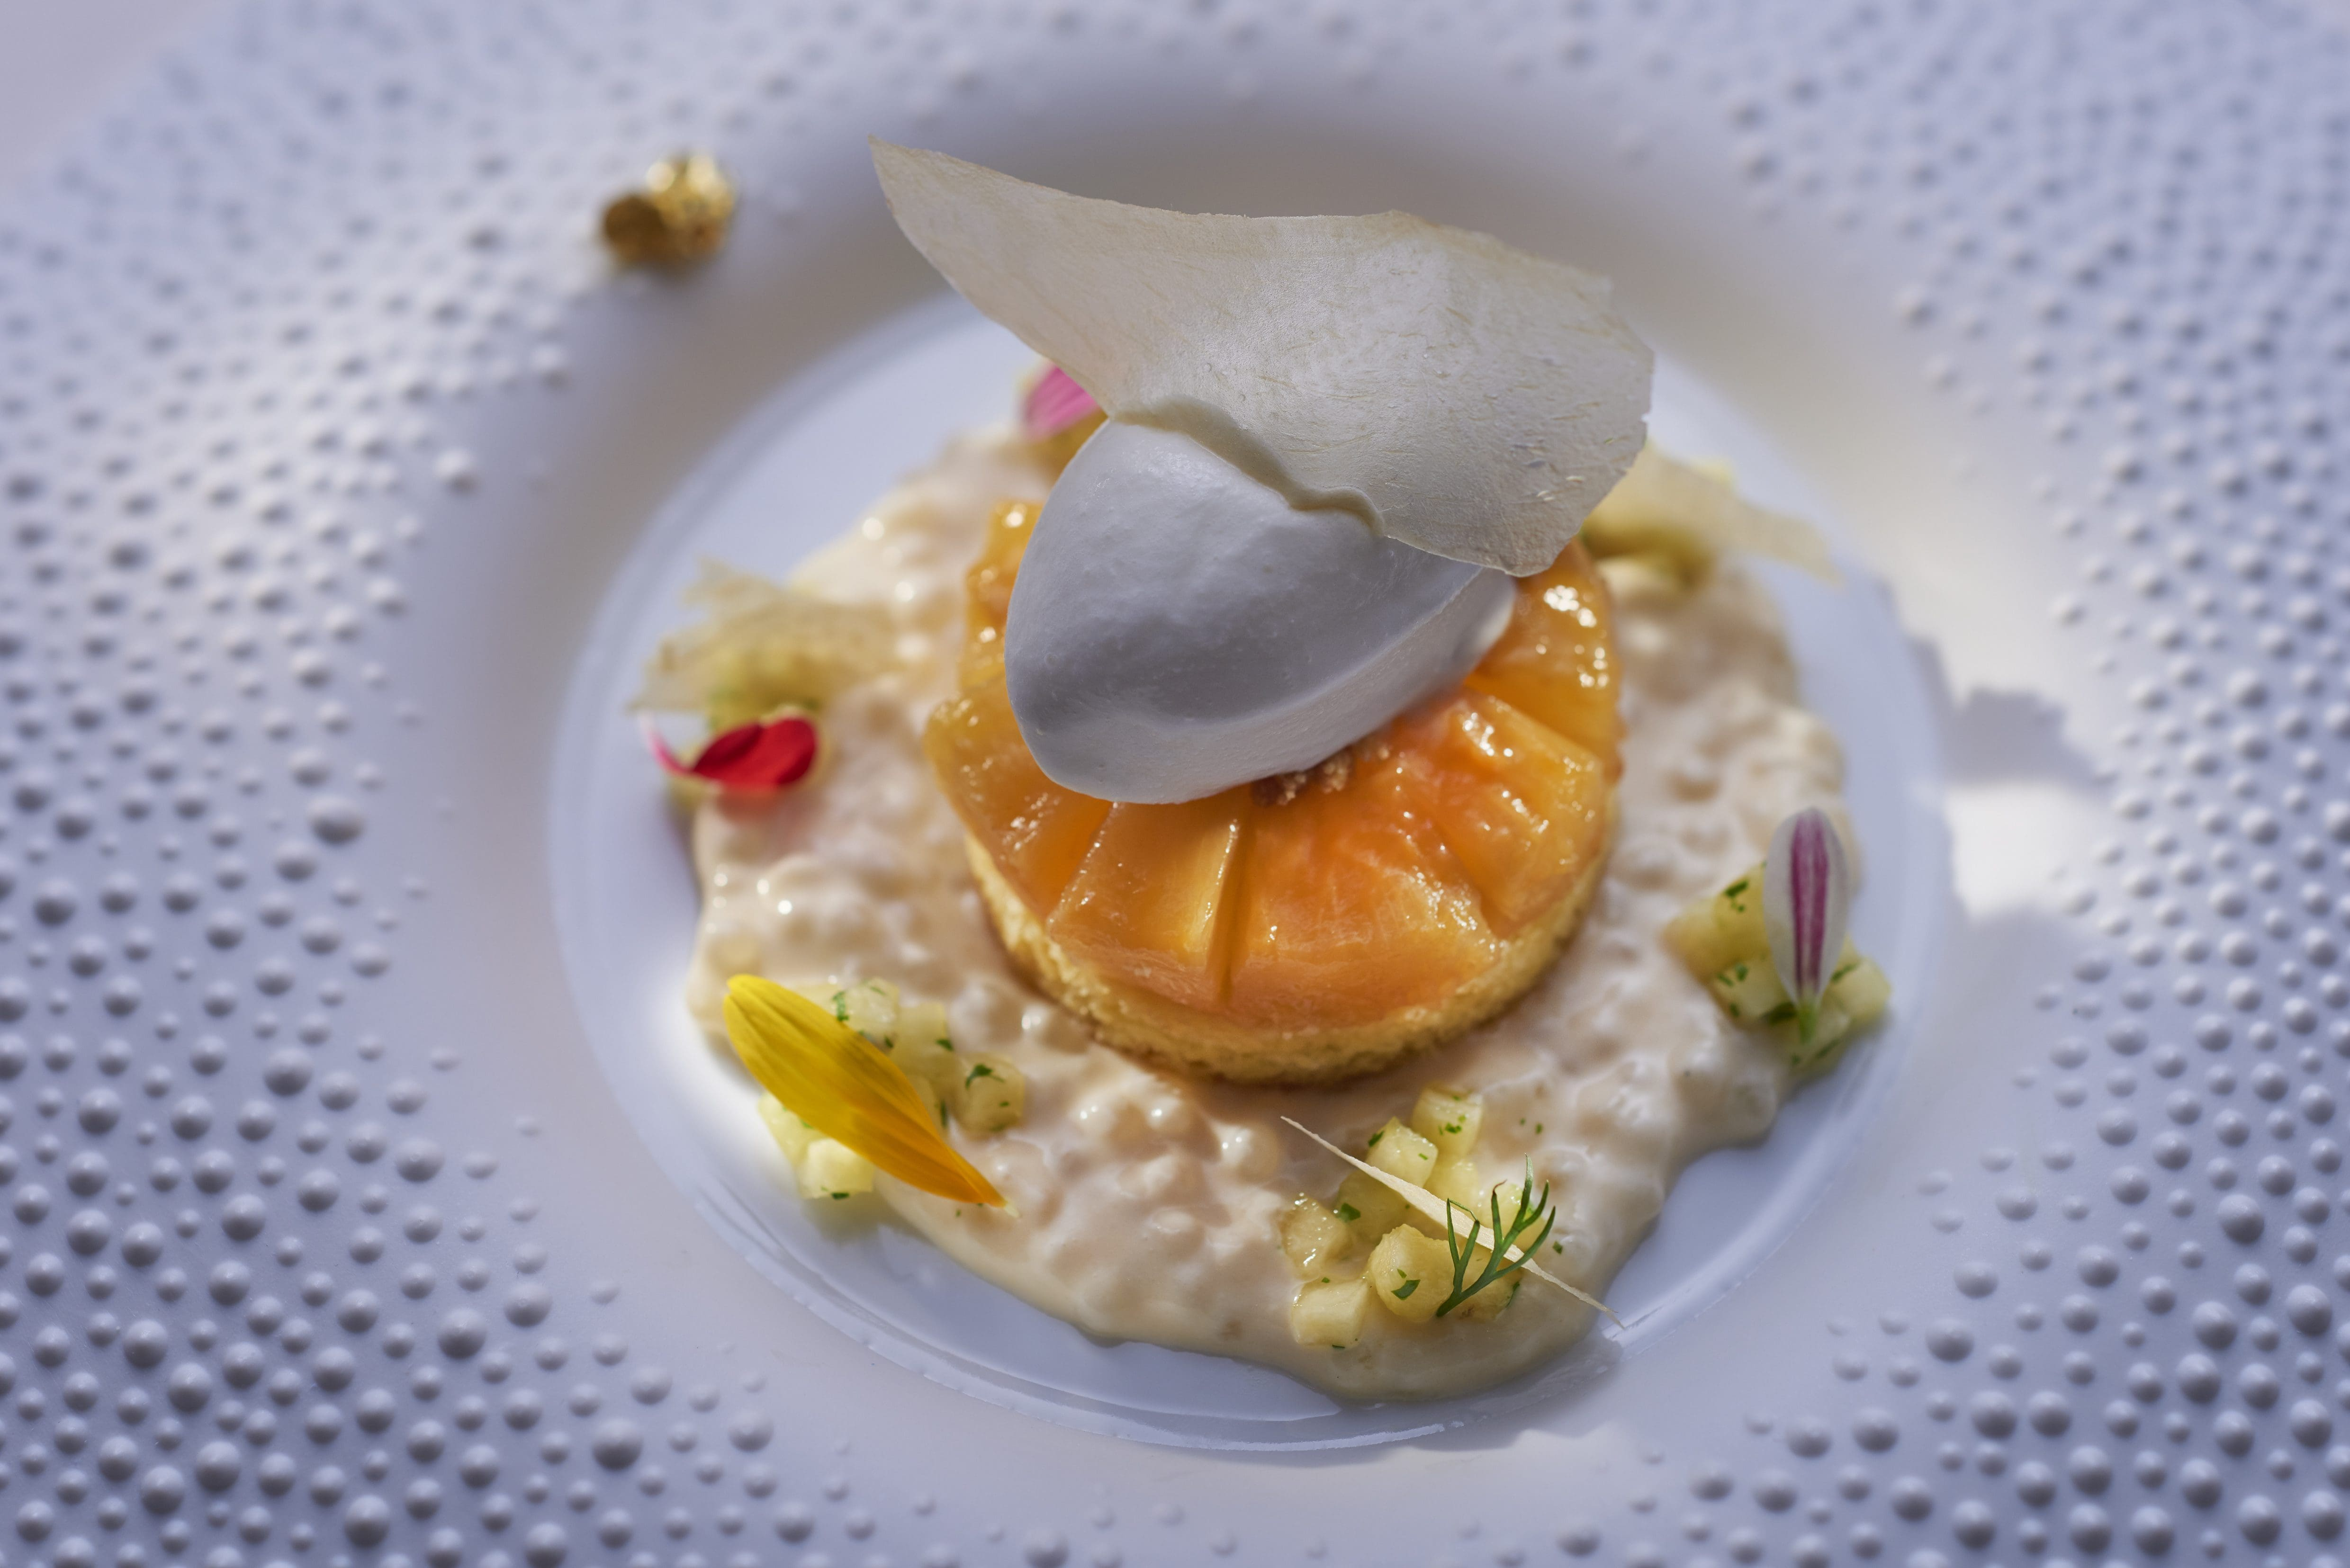 Two Michelin-starred Italian restaurant Seta at Mandarin Oriental, Milan